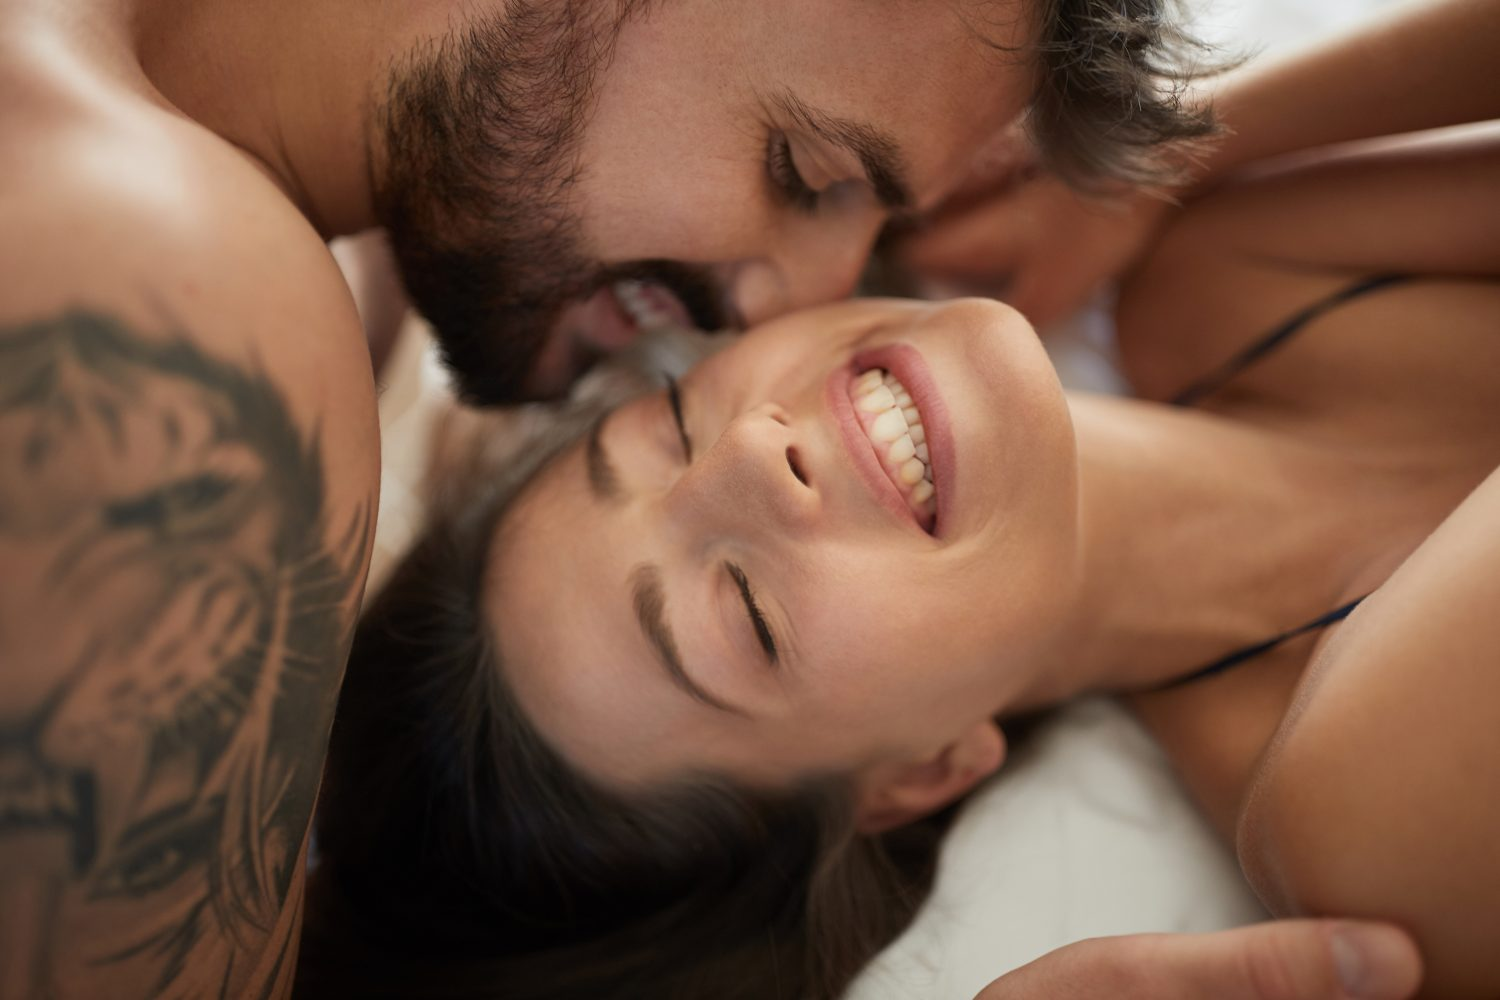 5 Things Only A Real Man Can Do In A Relationship